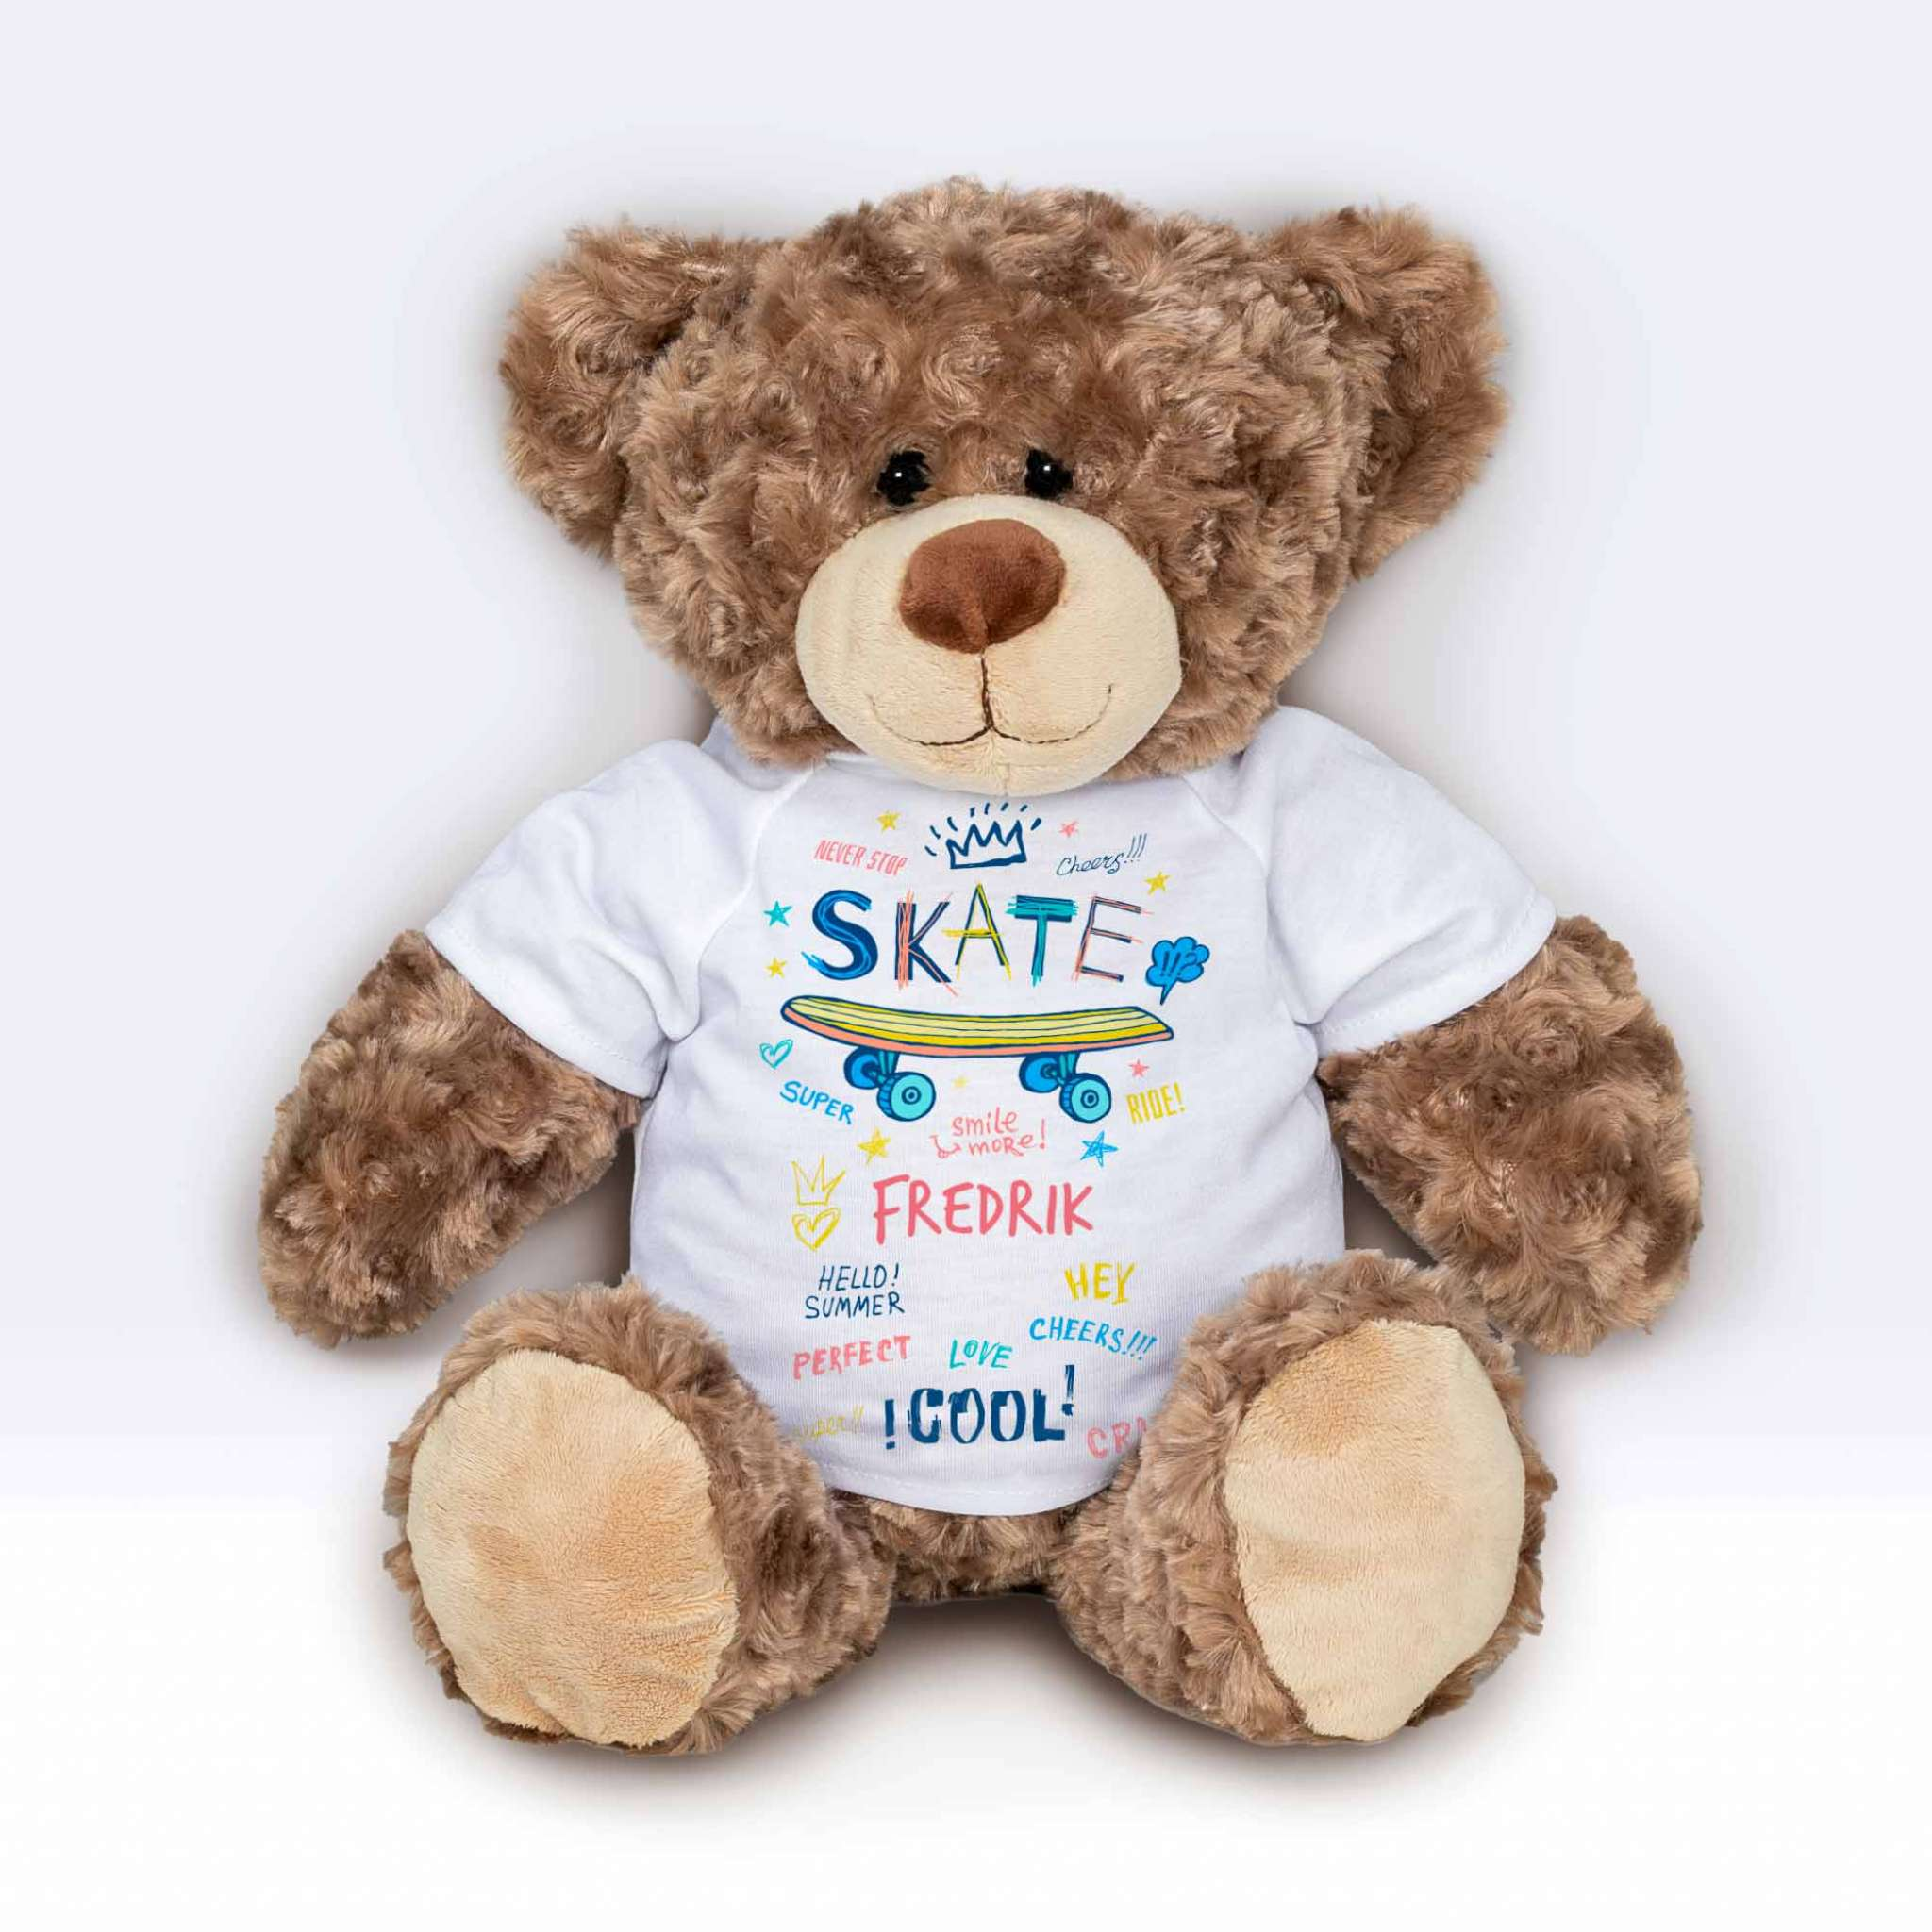 Teddy T-shirt Skate